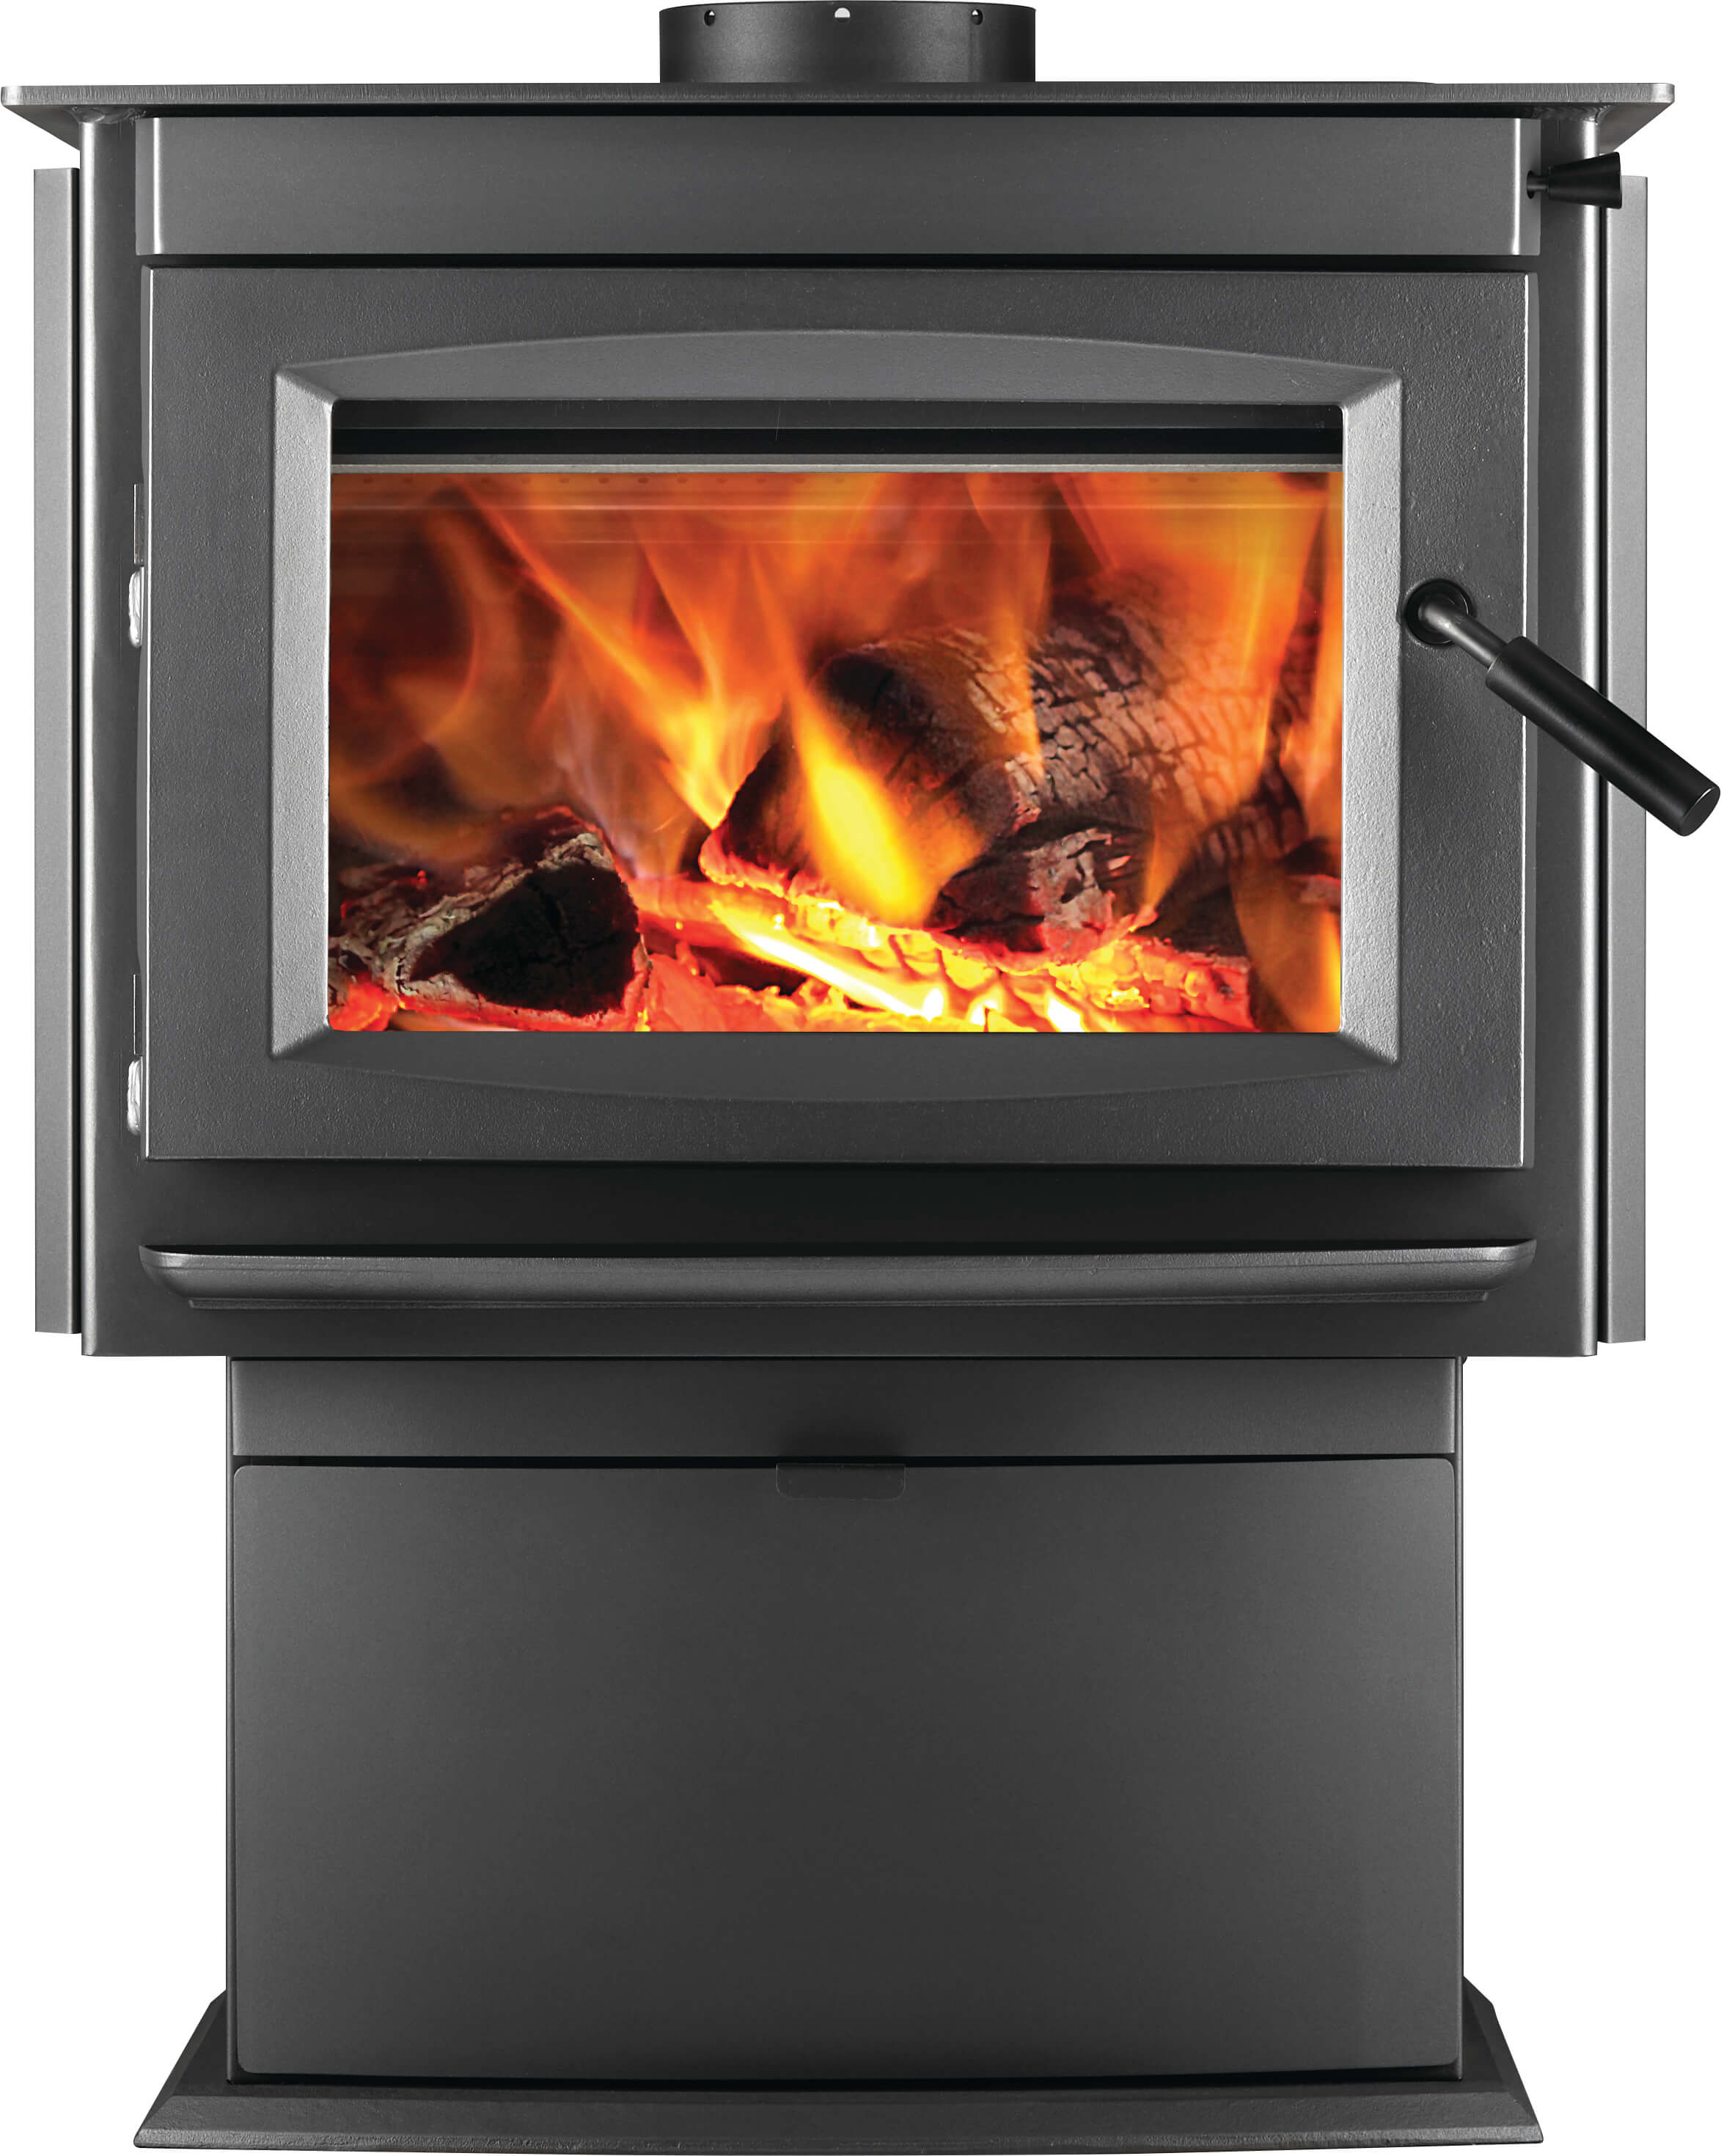 Click to view S20 Wood Stove